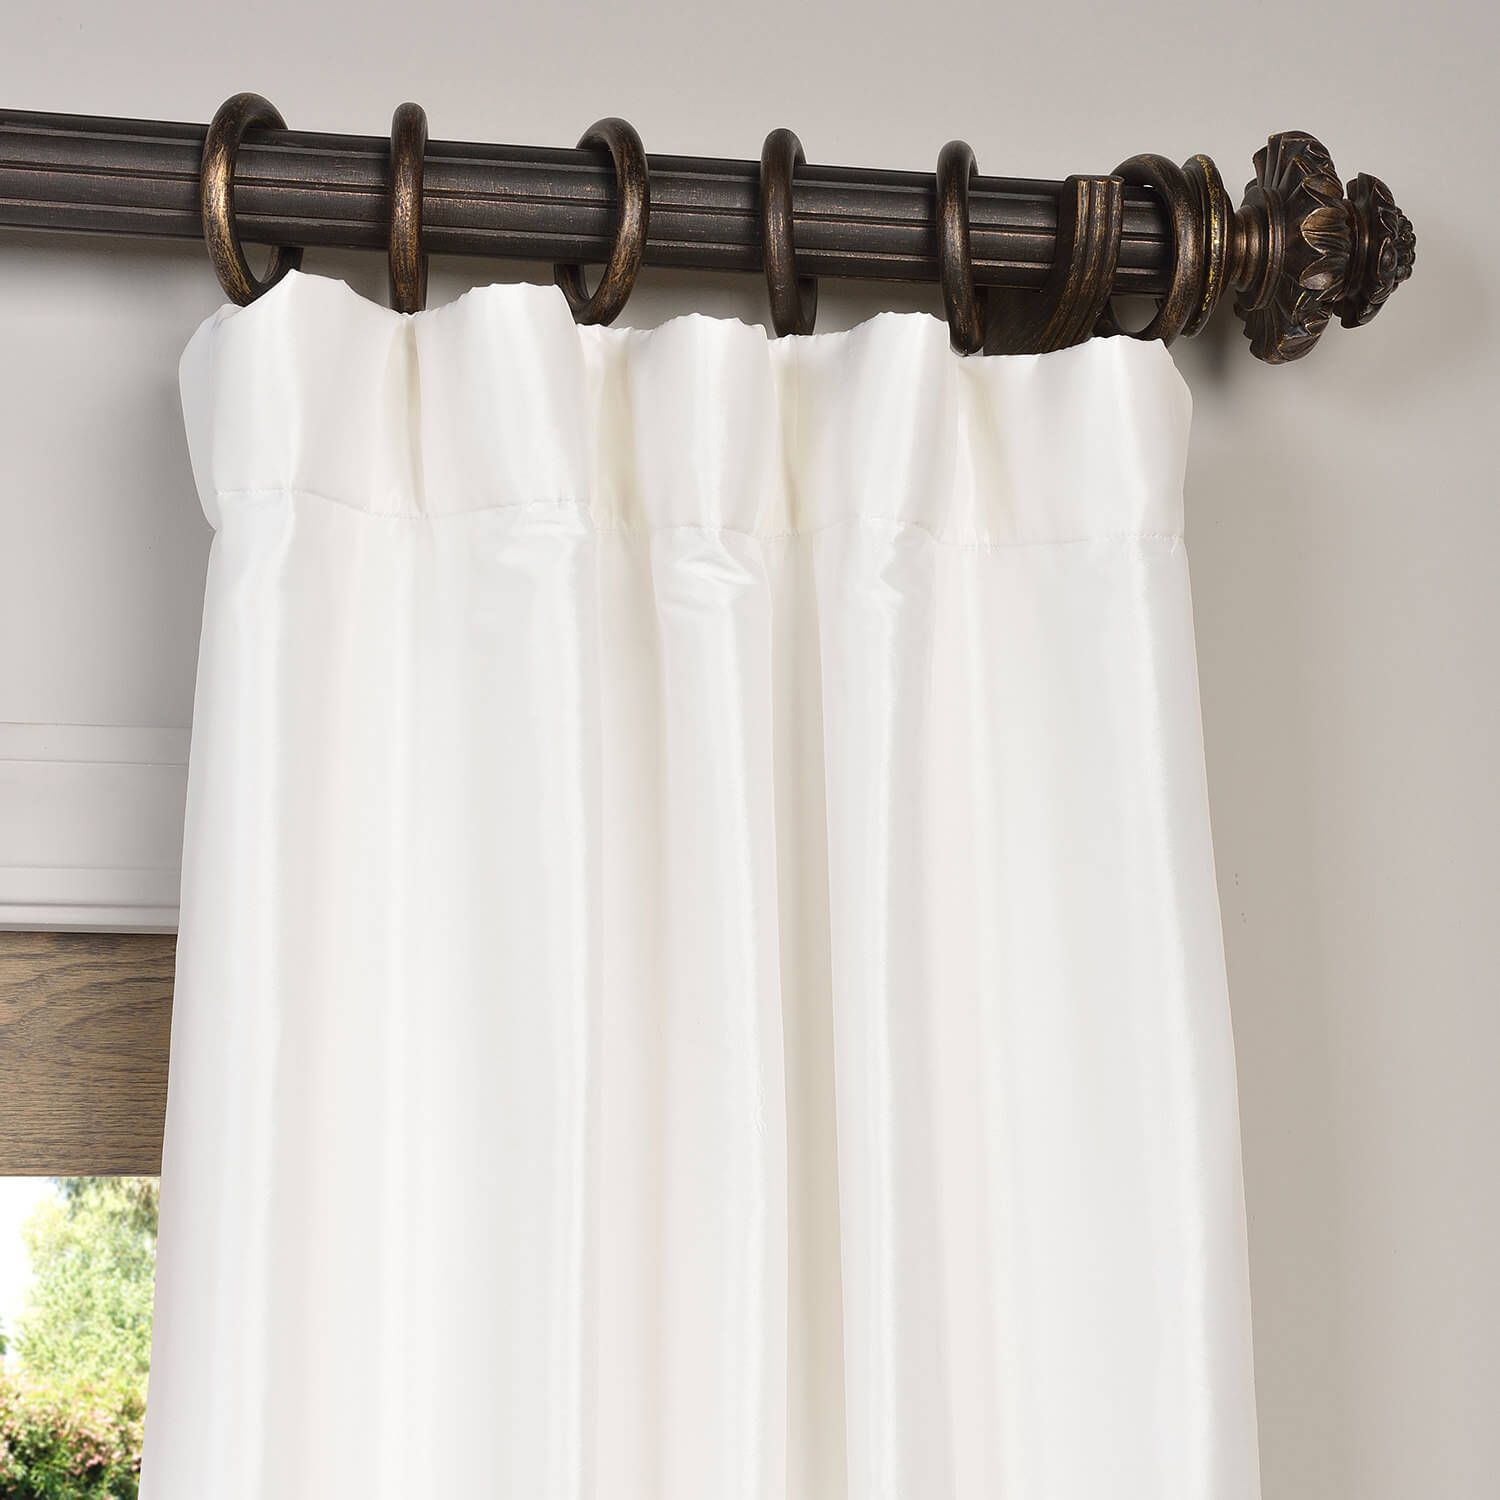 buy drapes window craftmine nice where and whitenice curtain living bedroom cool co designs roominteresting to curtains ideas discount teenage toronto in